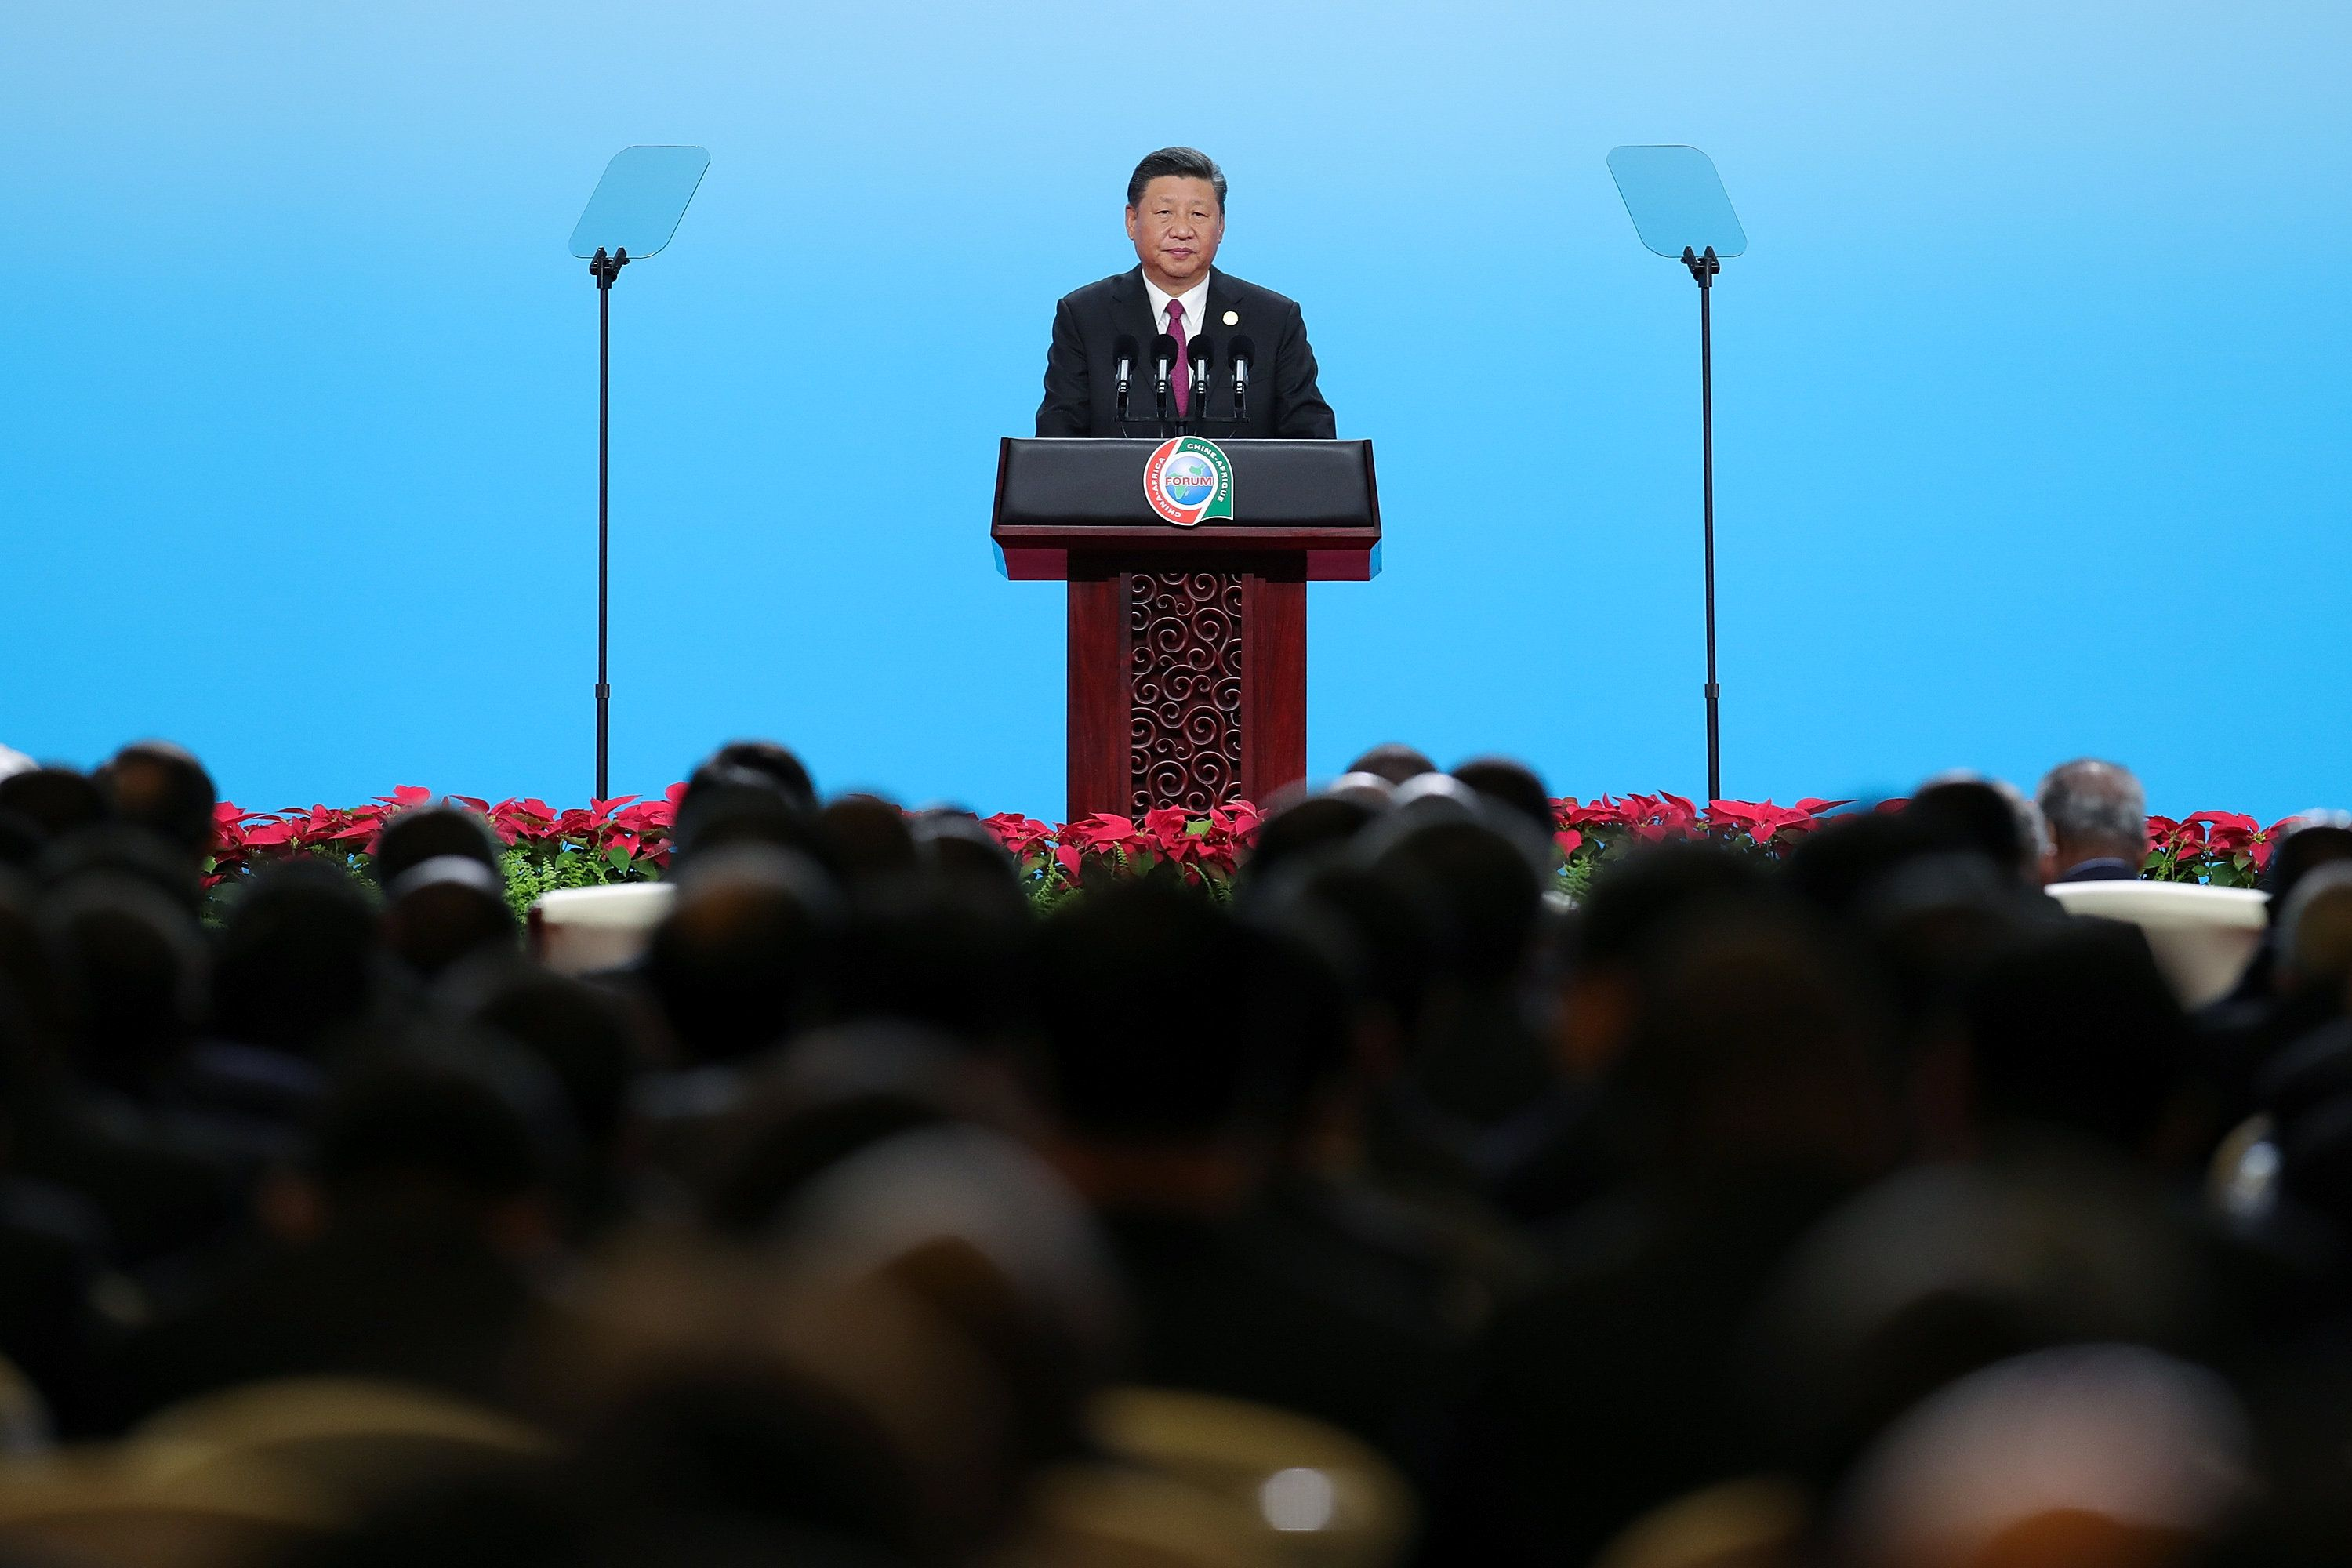 No strings attached with Africa deal- China's Xi Jinping